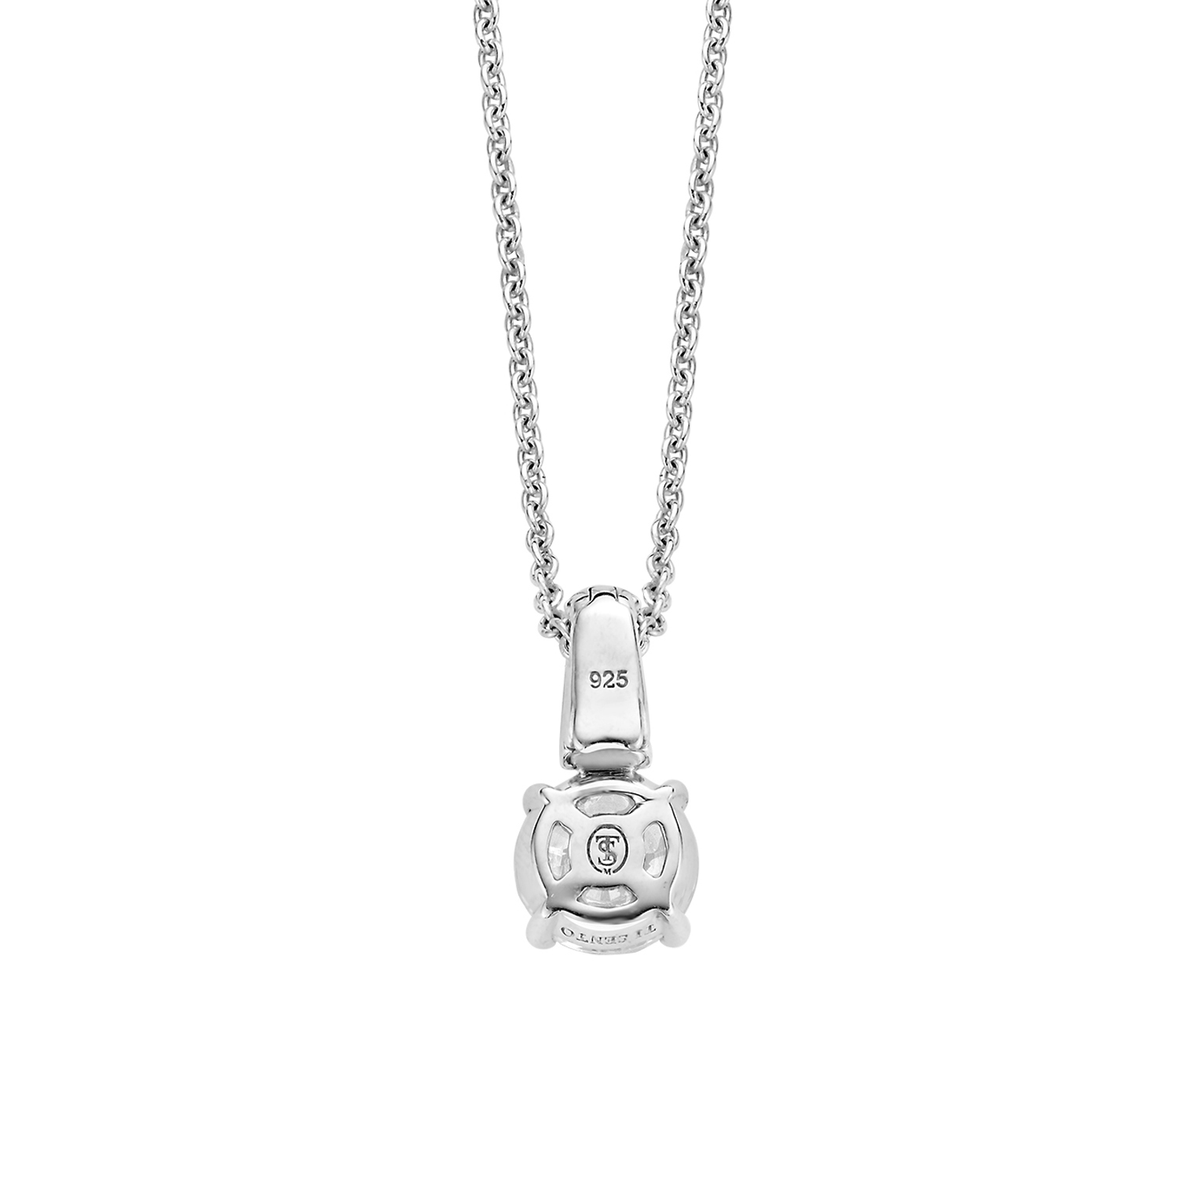 TI SENTO - Milano Necklace 3879ZI